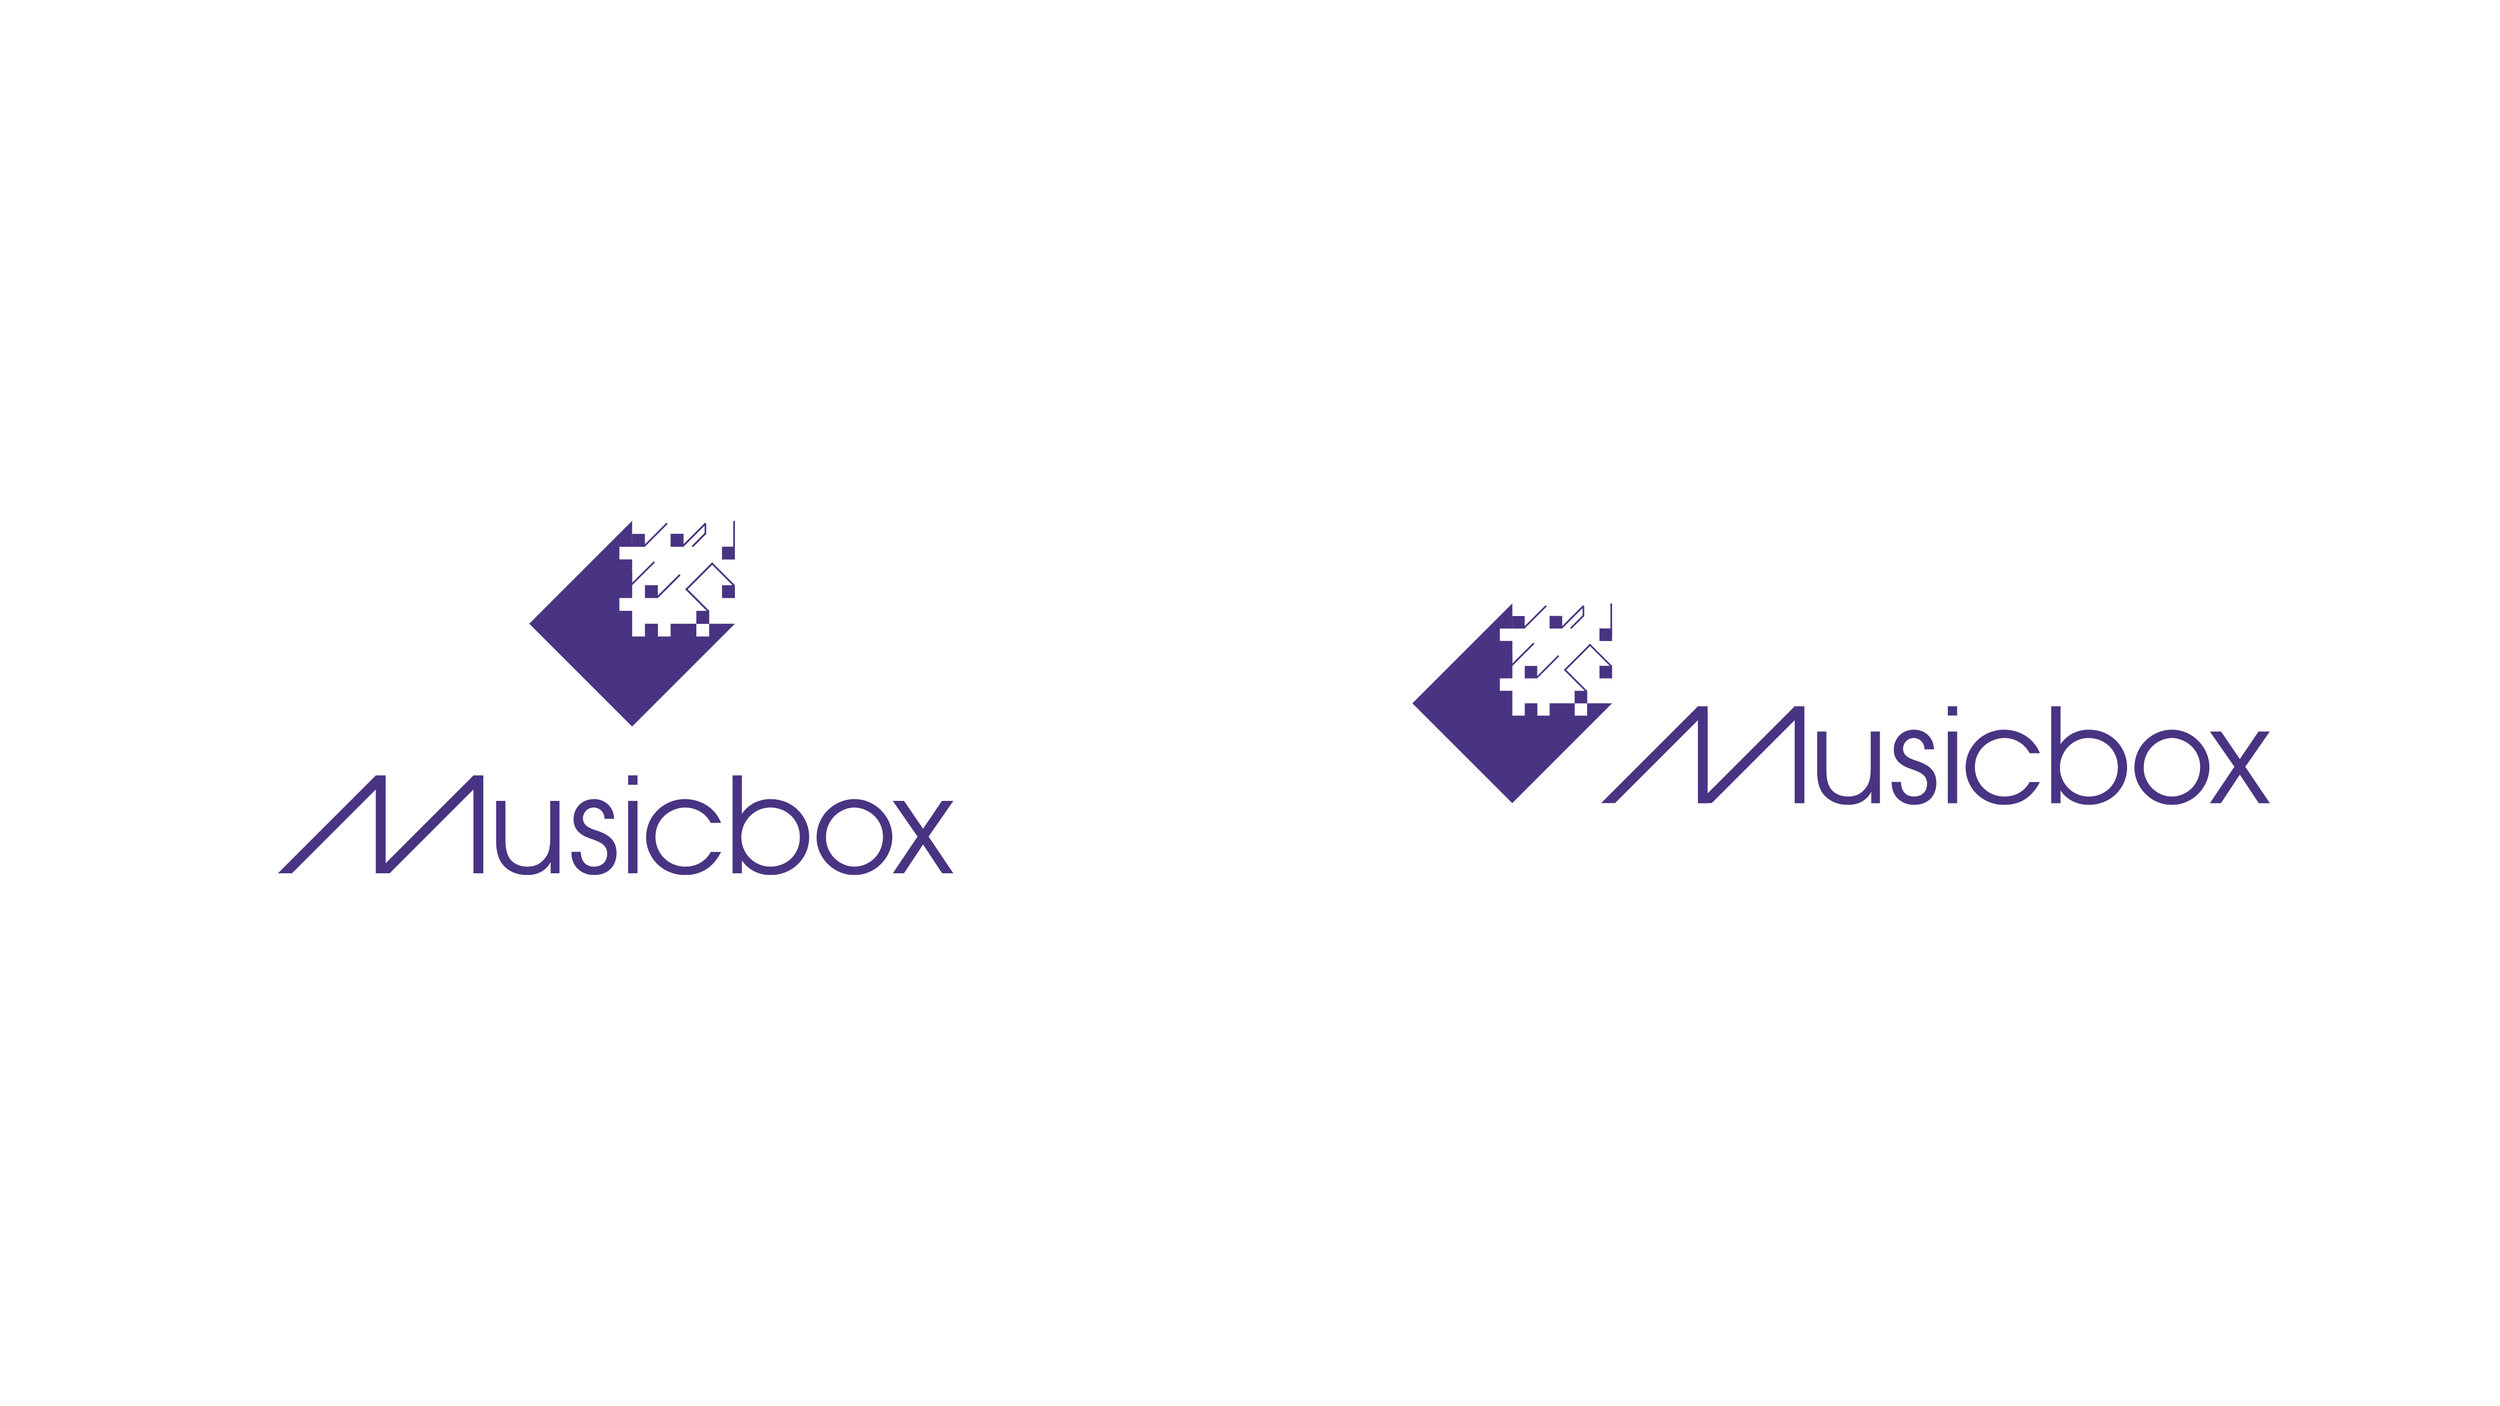 musicbox-logo-kyle-dolan-design-illustration-kansas-city-logo.jpg